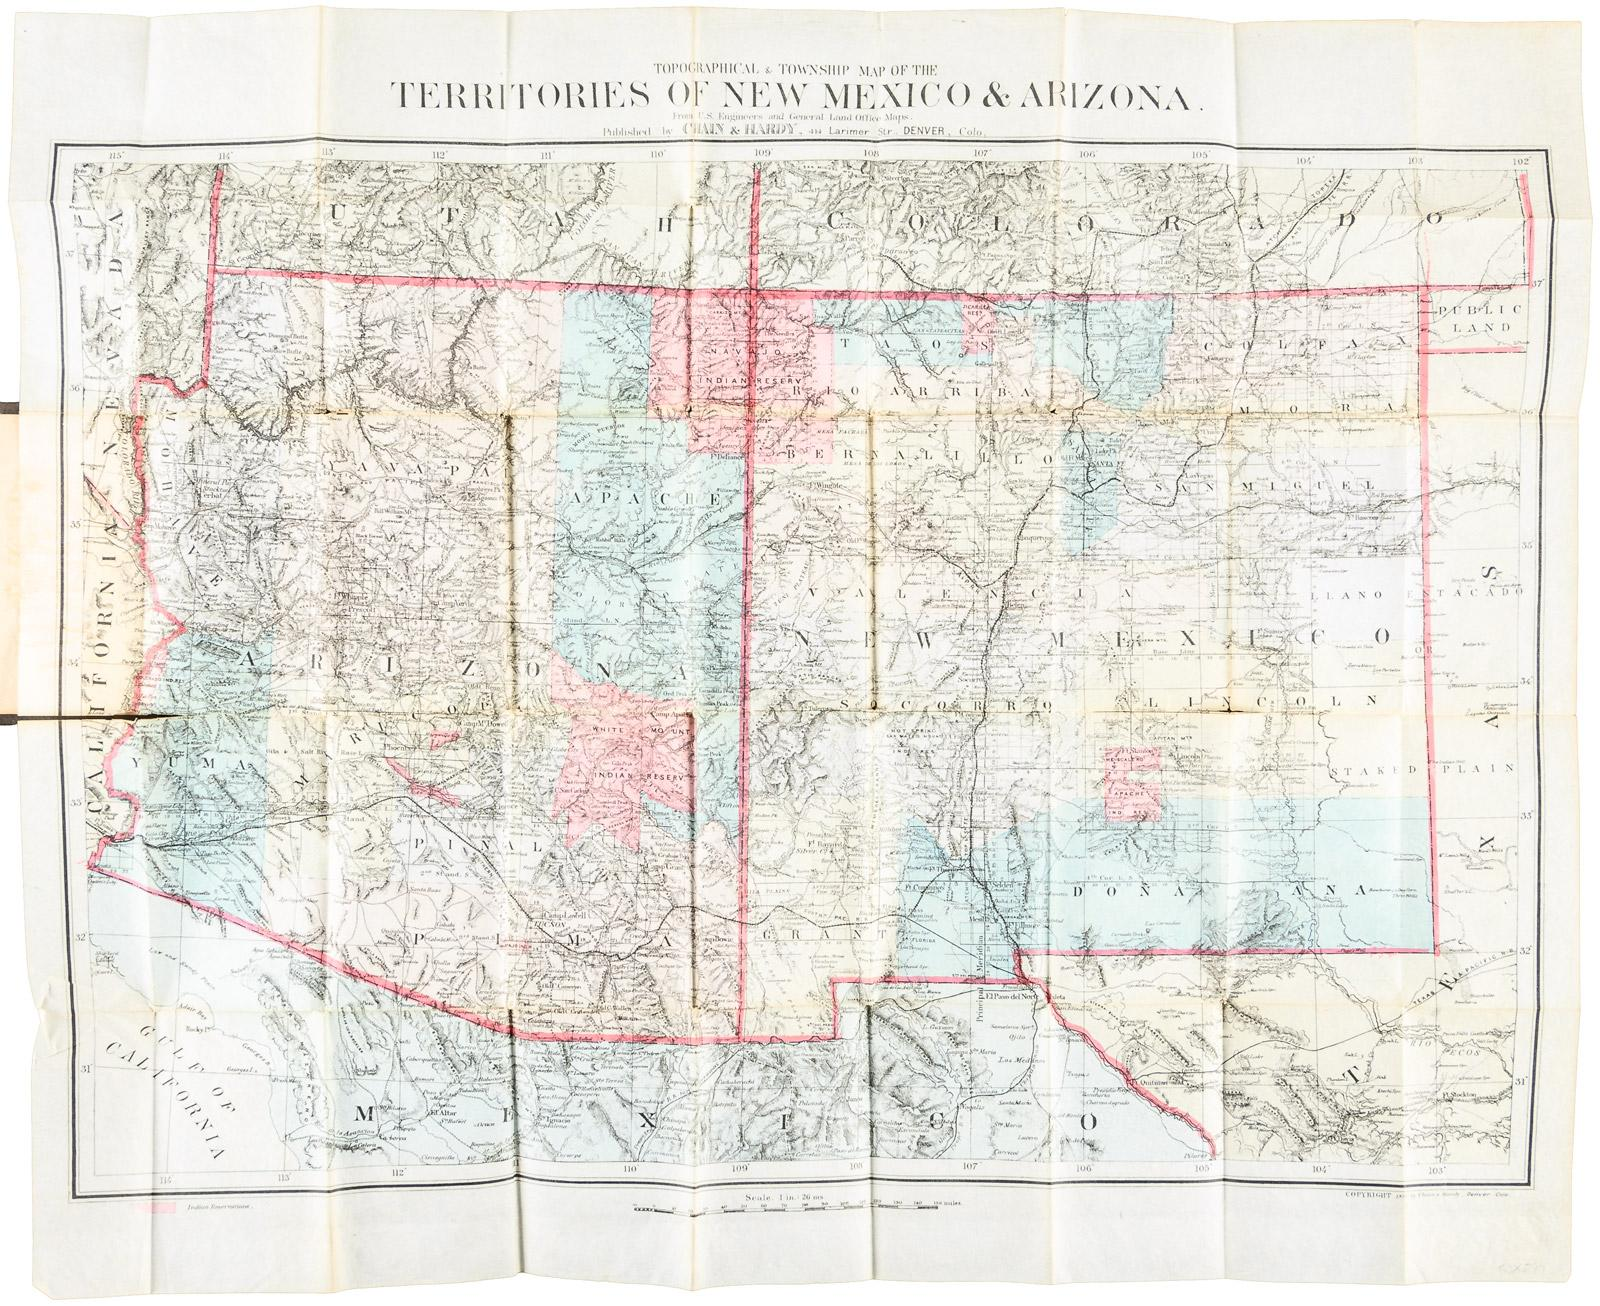 Topographical & Township Map of the Territories of New Mexico ...